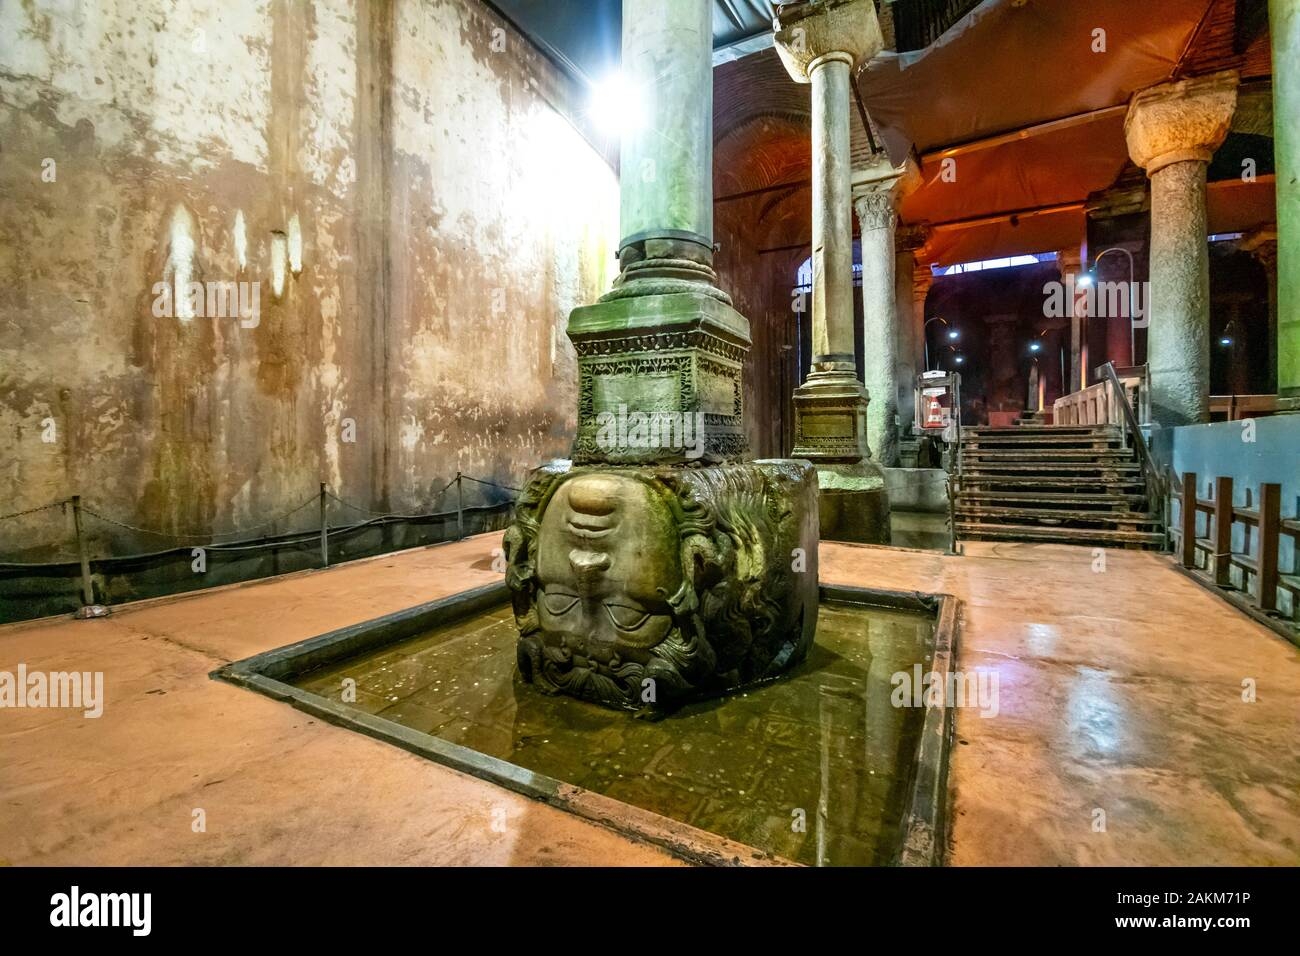 The upside down stone Medusa head column in the ancient underground Basilica Cistern in the Sultanahmet district Stock Photo